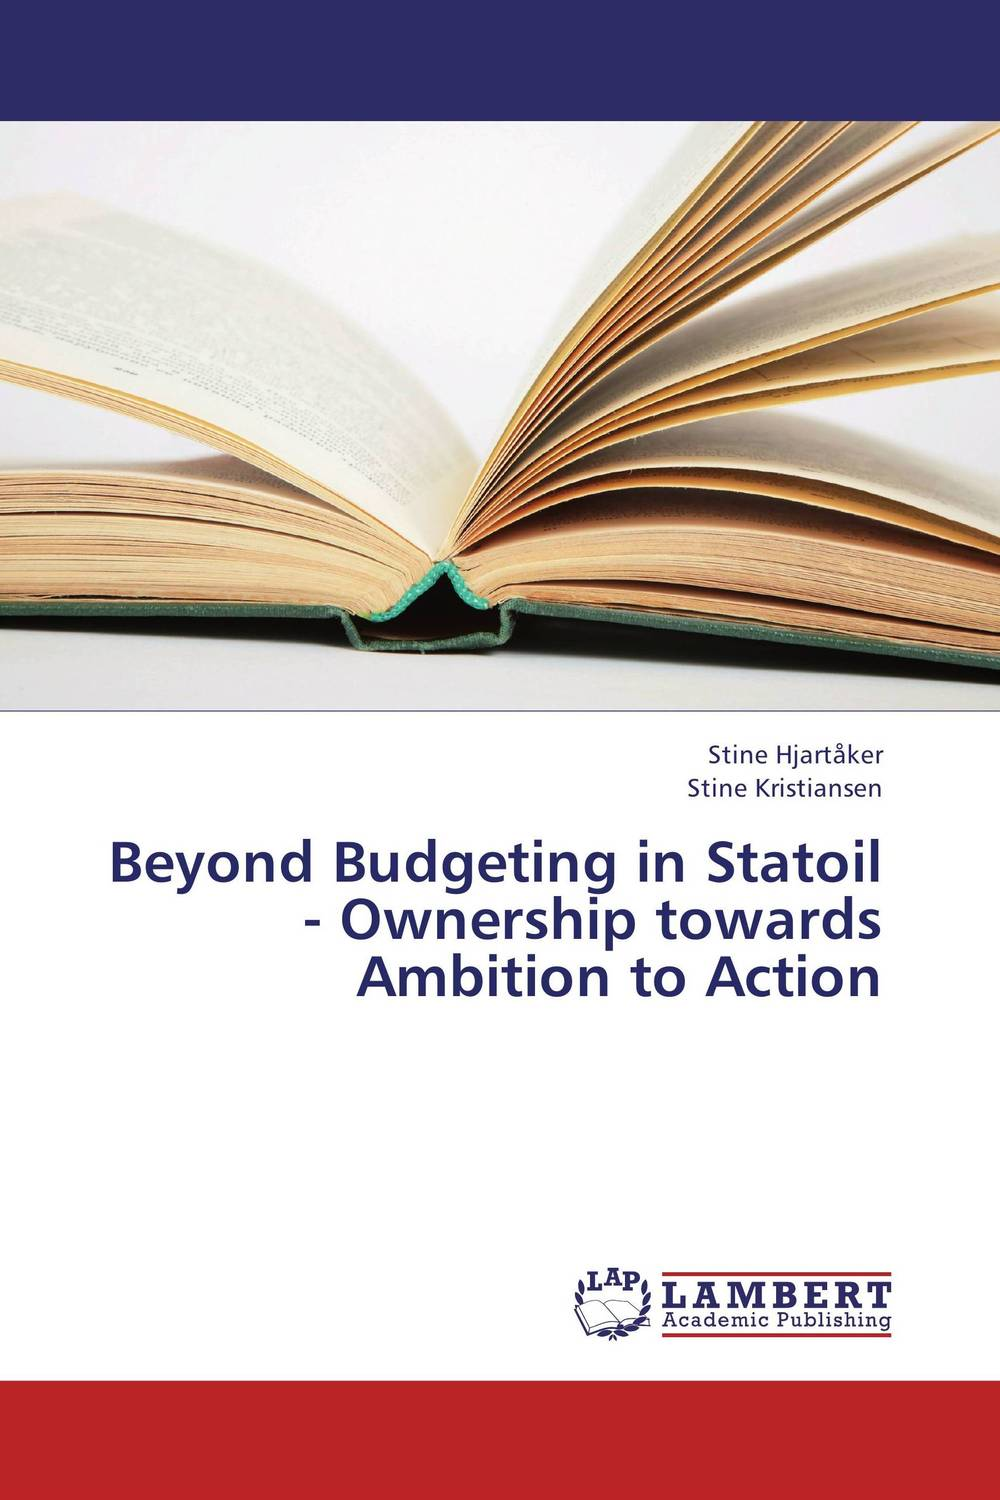 Beyond Budgeting in Statoil - Ownership towards Ambition to Action the concept of collective ownership in ship